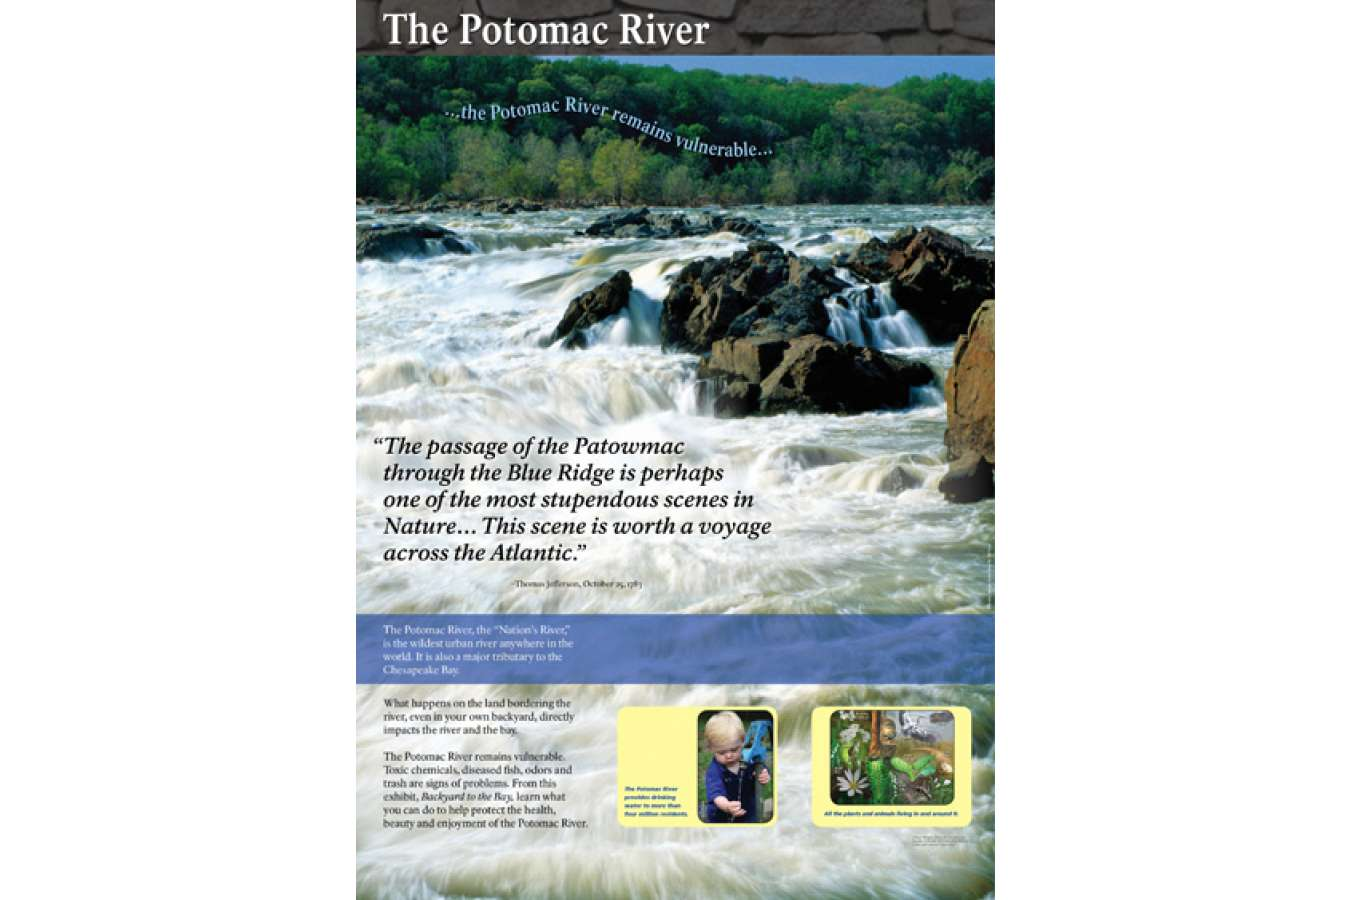 Potcy X1 : The Potomac River is the Wildest Urban River in the World.